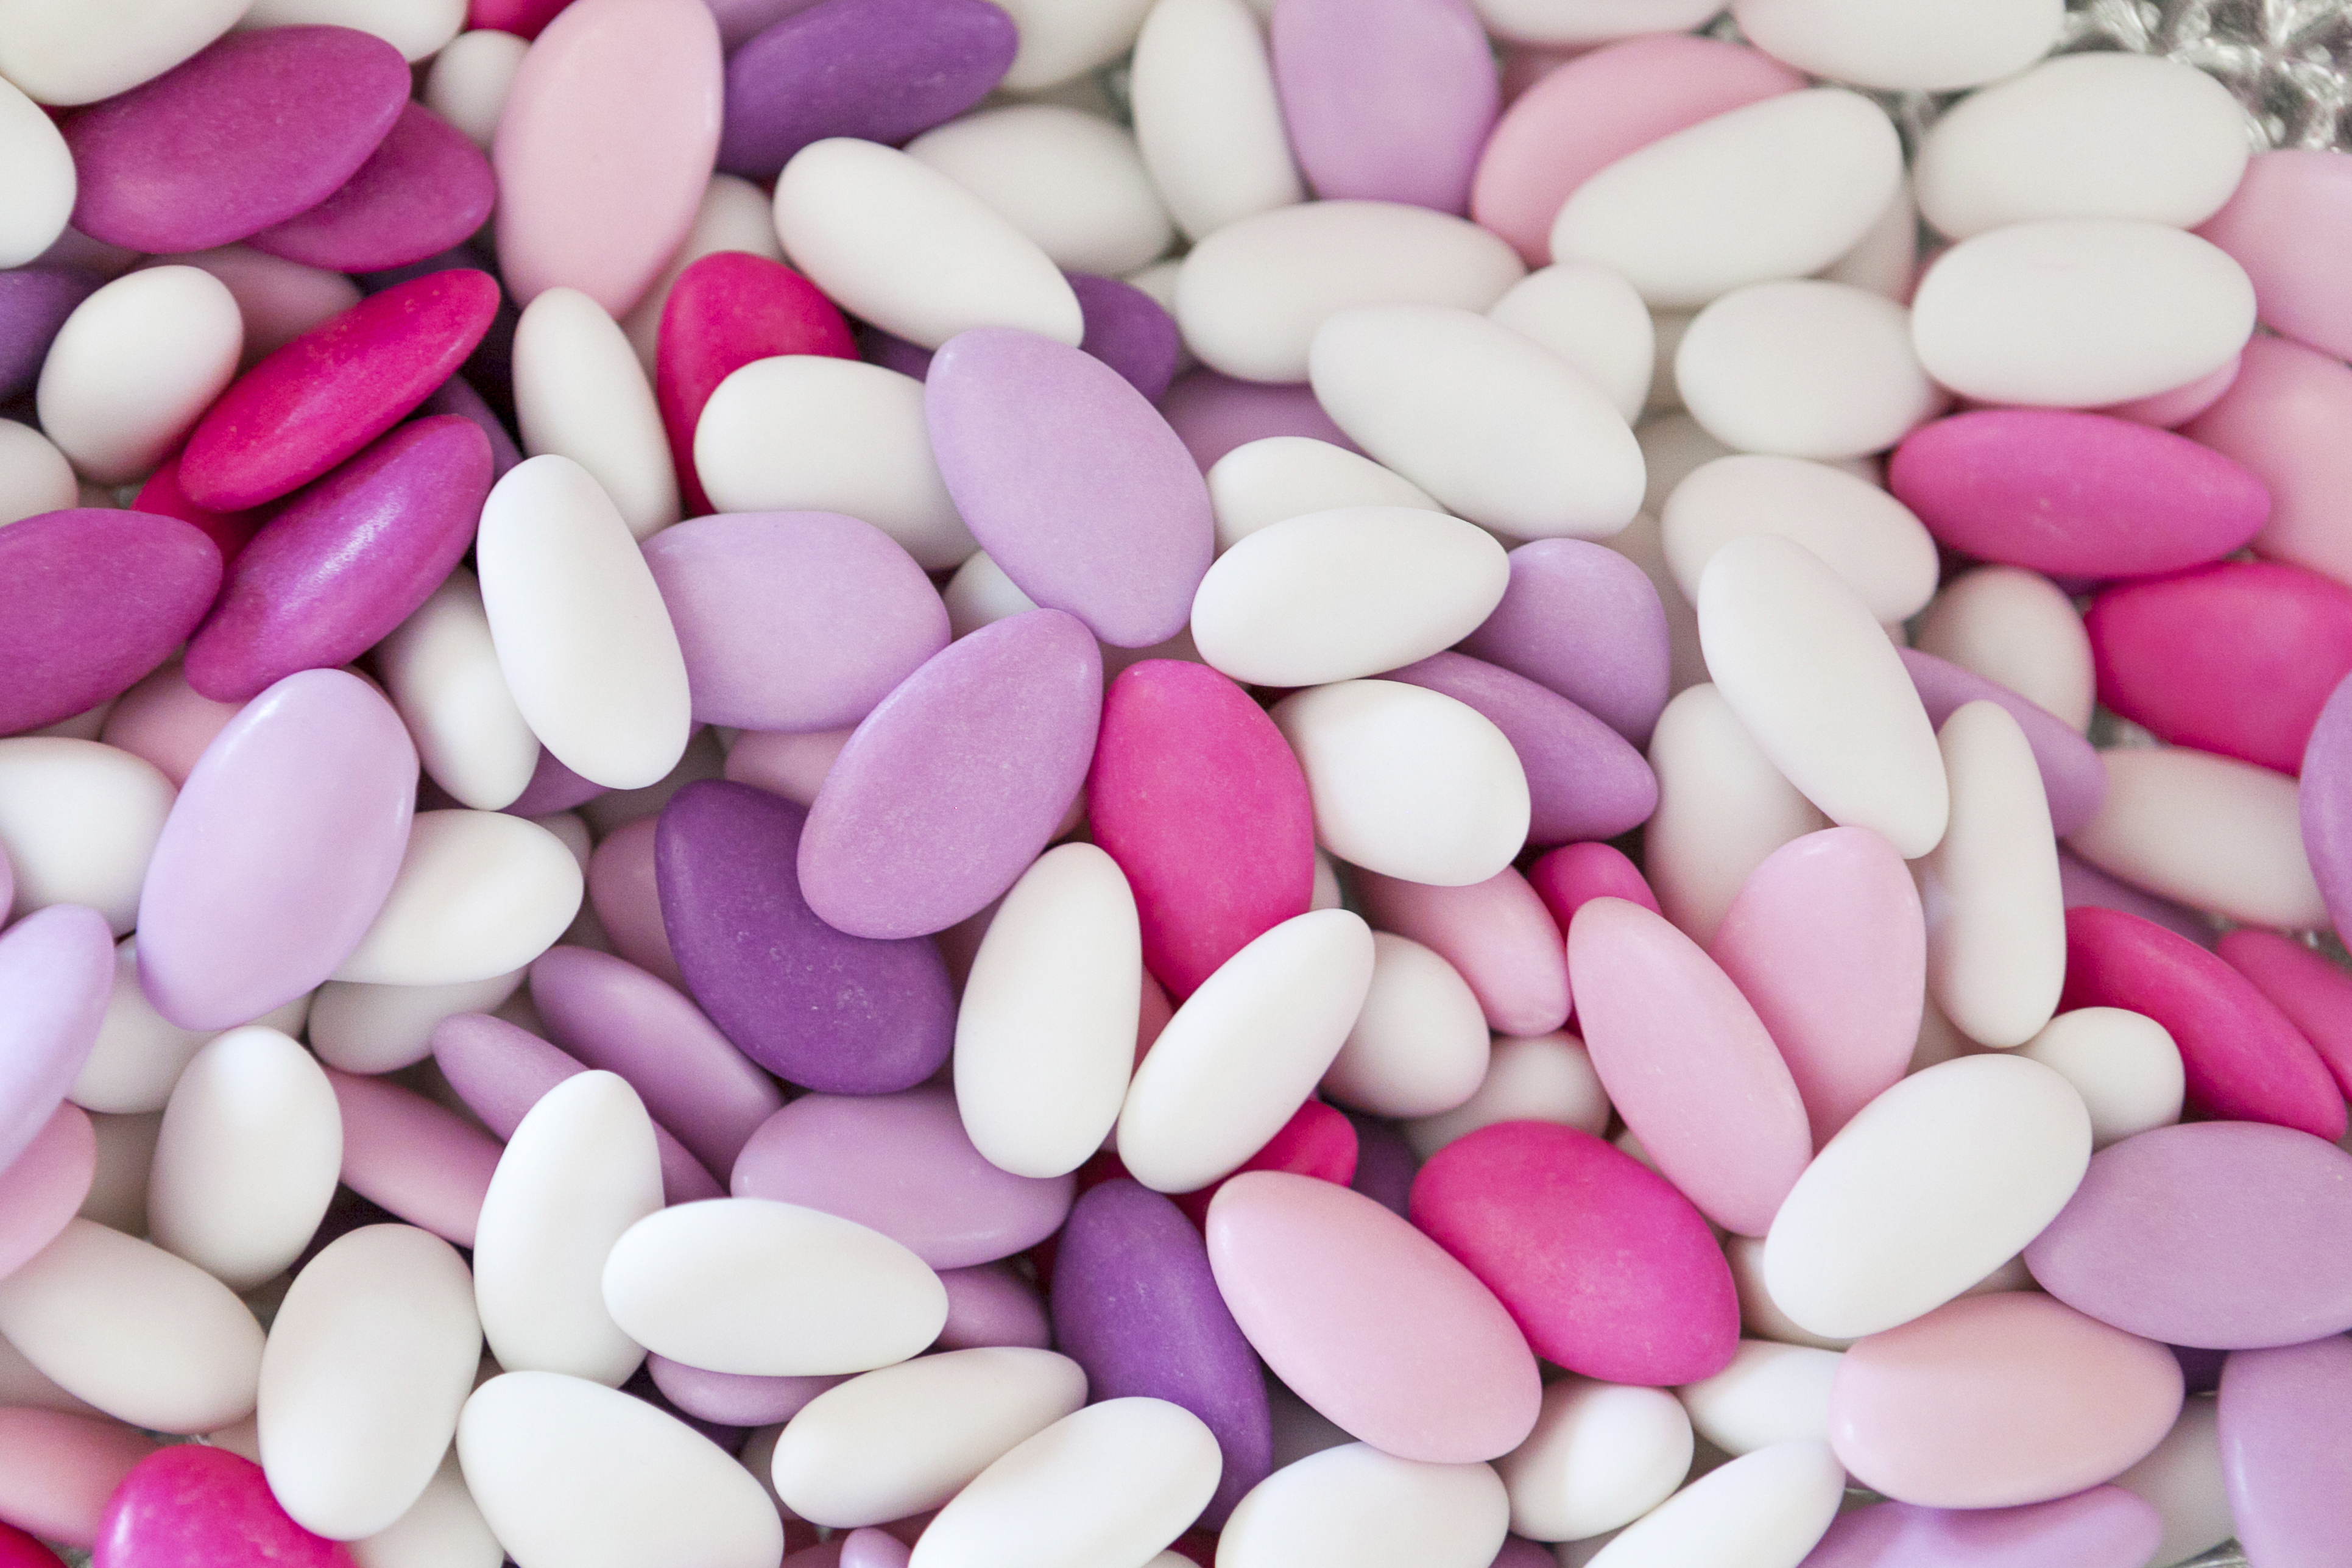 Why we use sugar coated almonds as wedding favours | Easy Weddings UK